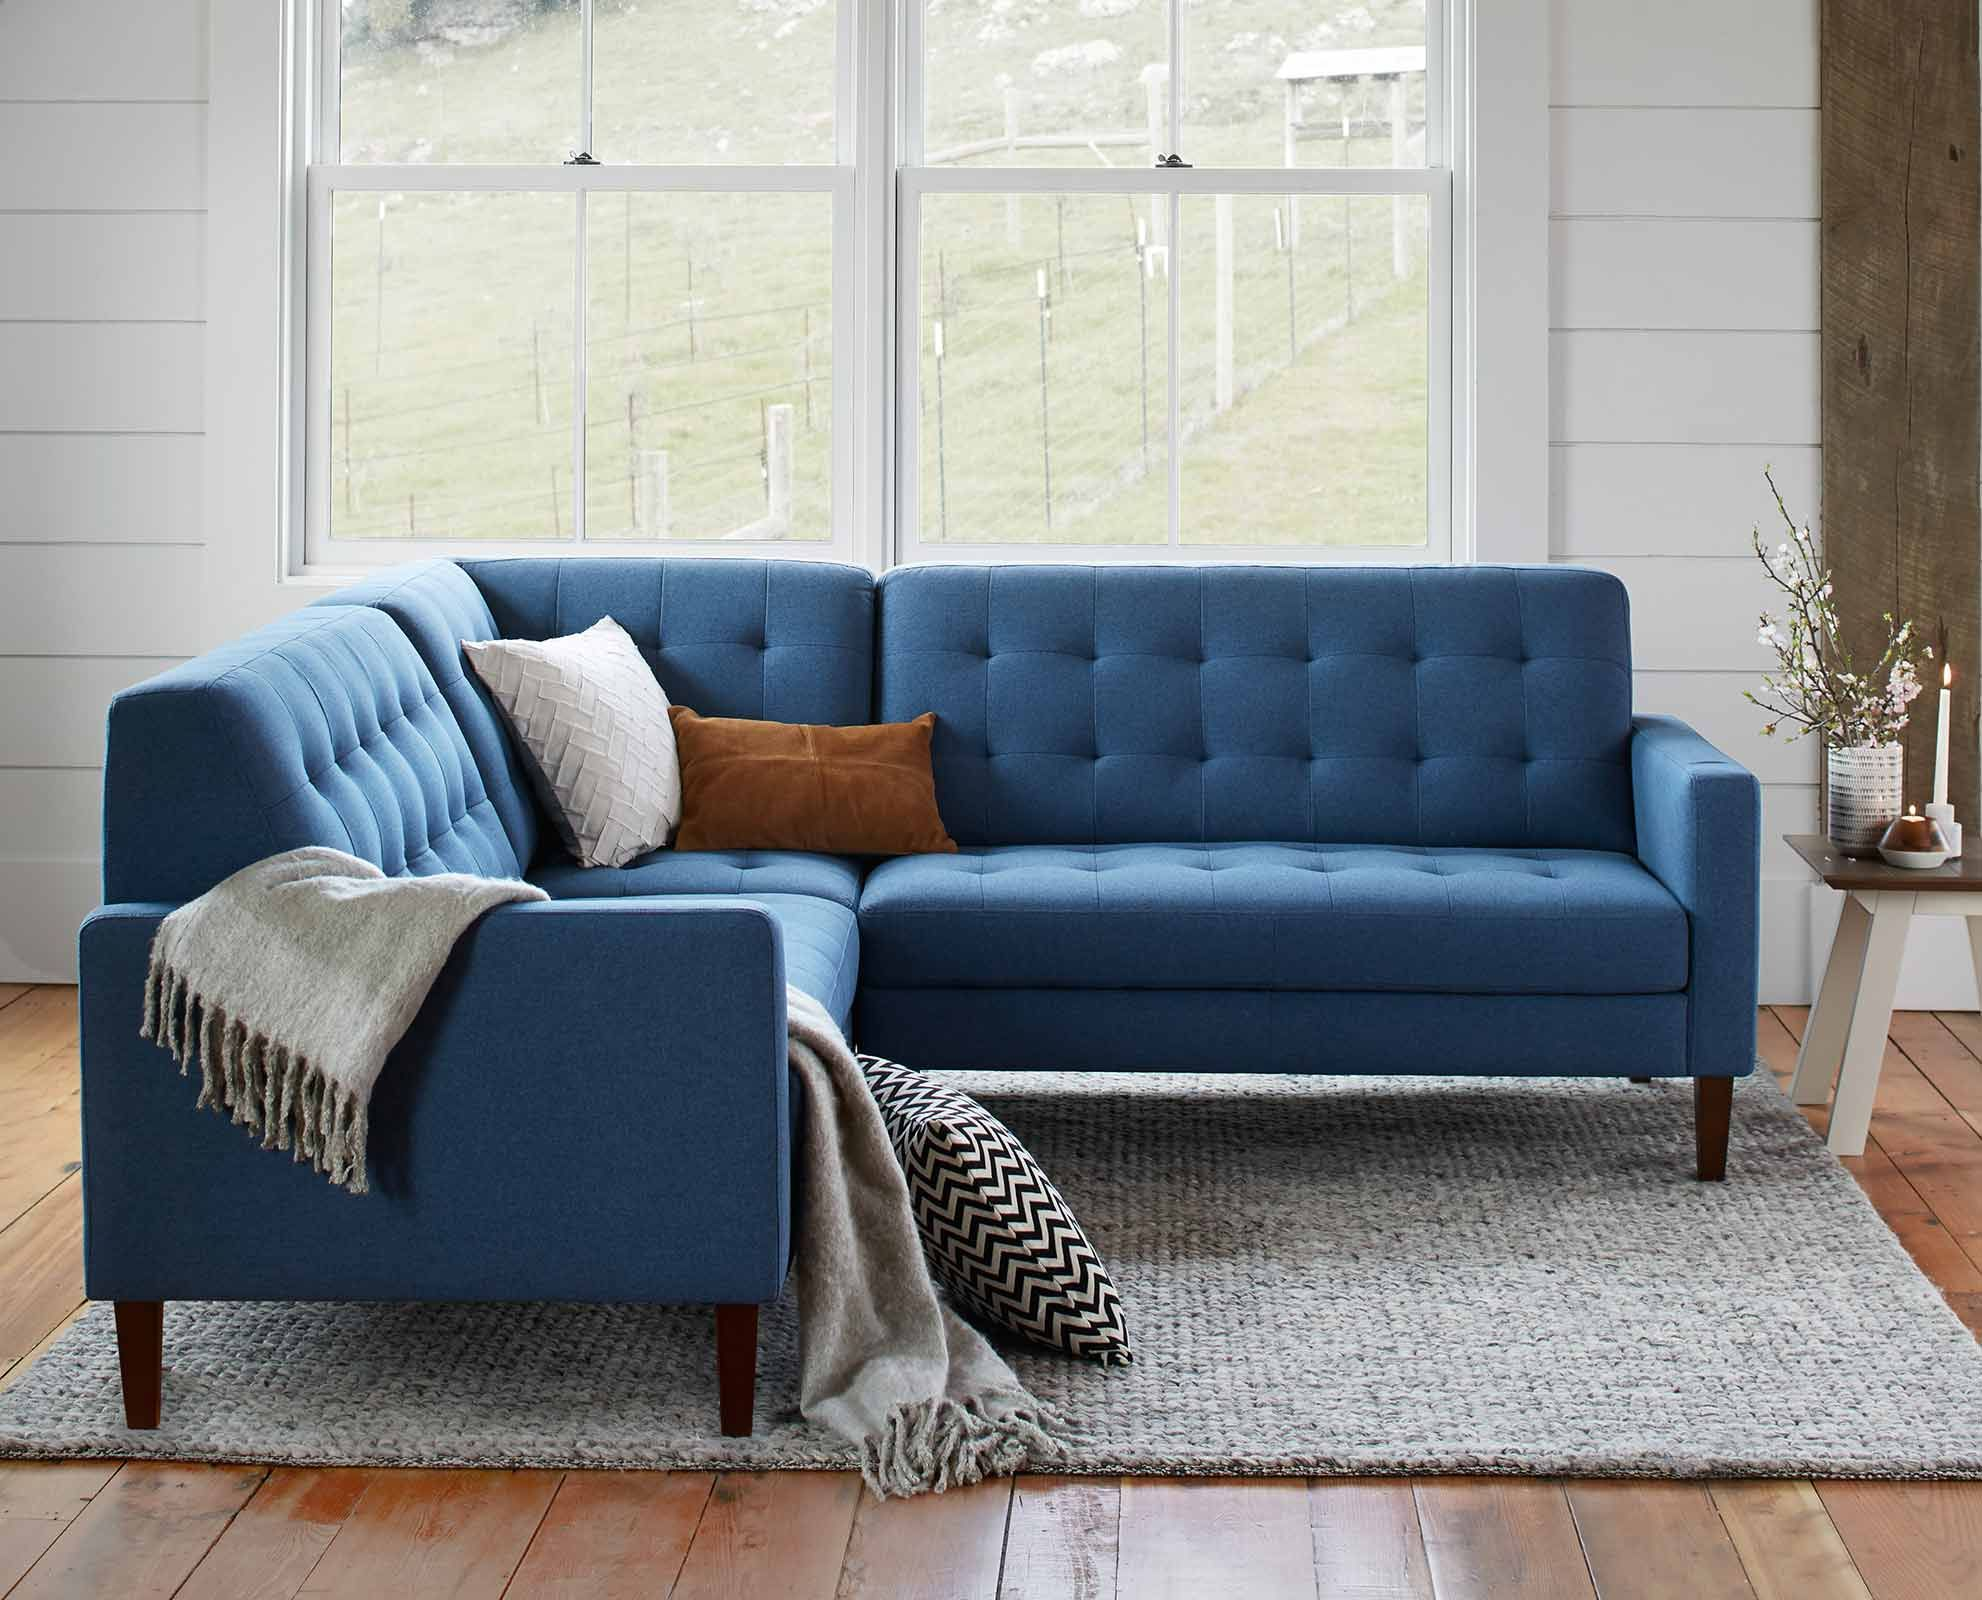 The Camilla Sectional from Scandinavian Designs - Adopt a Adopt a ...